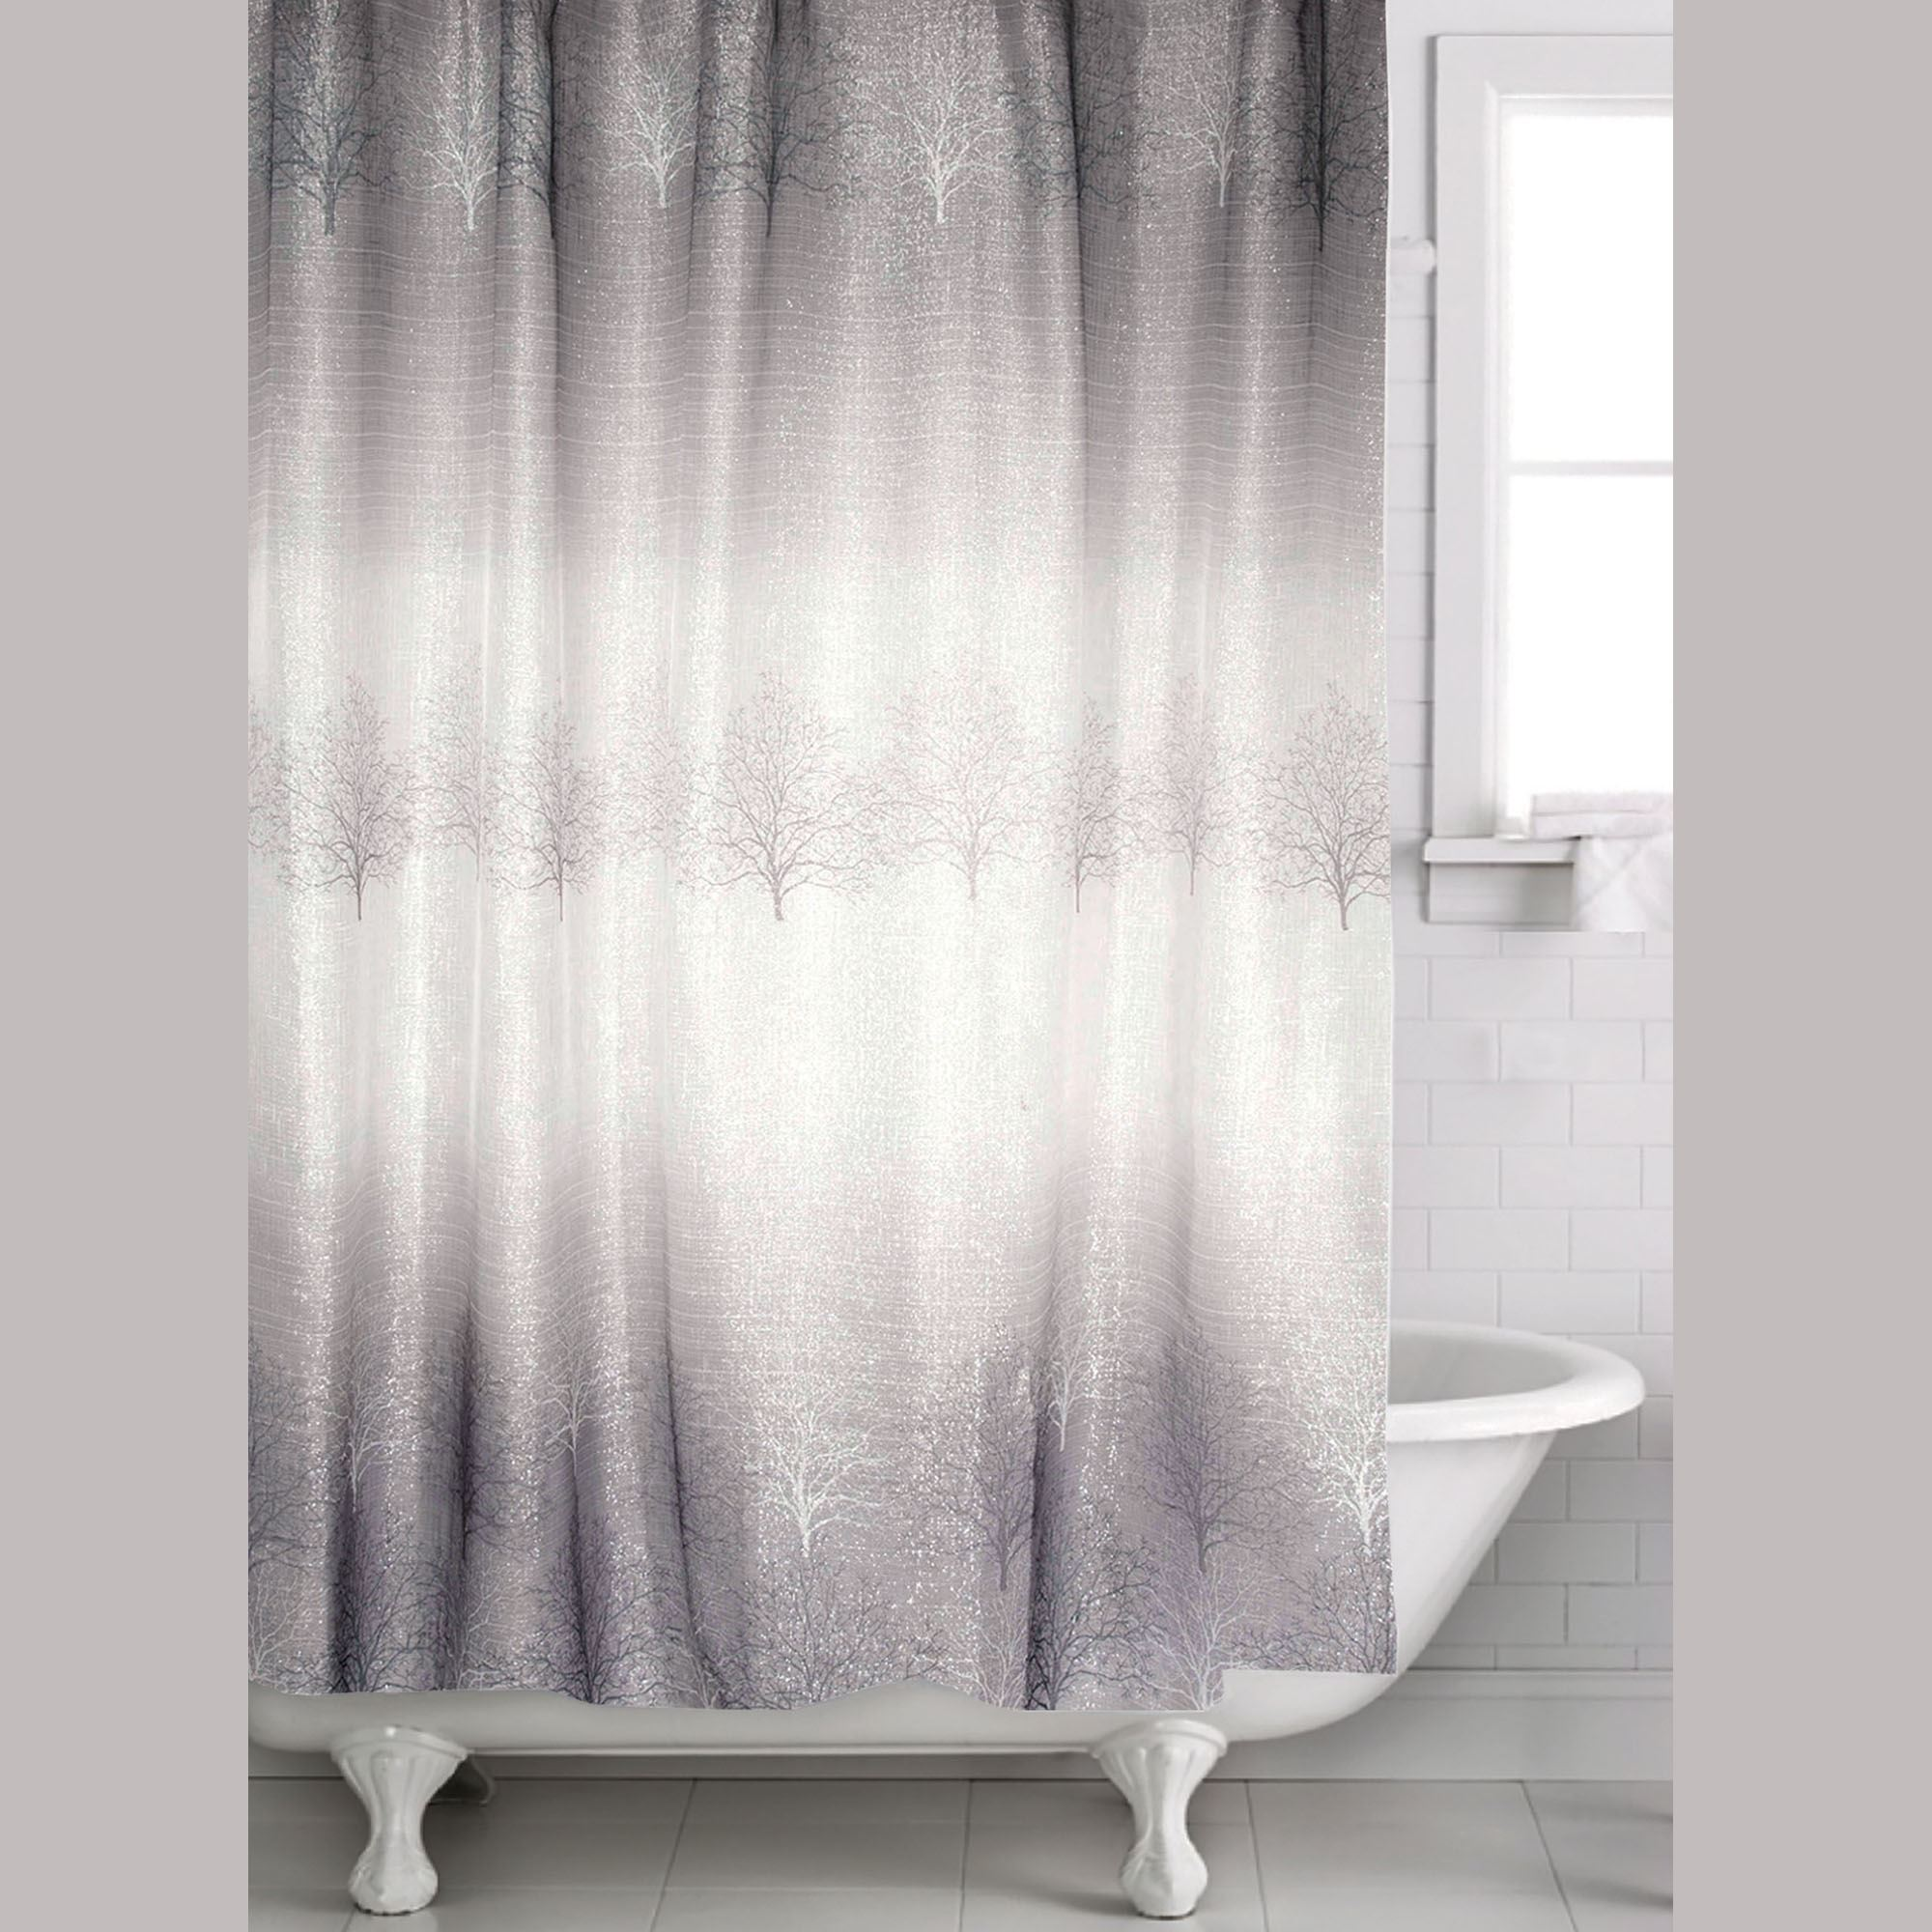 Spectrum Semi Sheer Shower Curtain Dark Gray 70 X 72